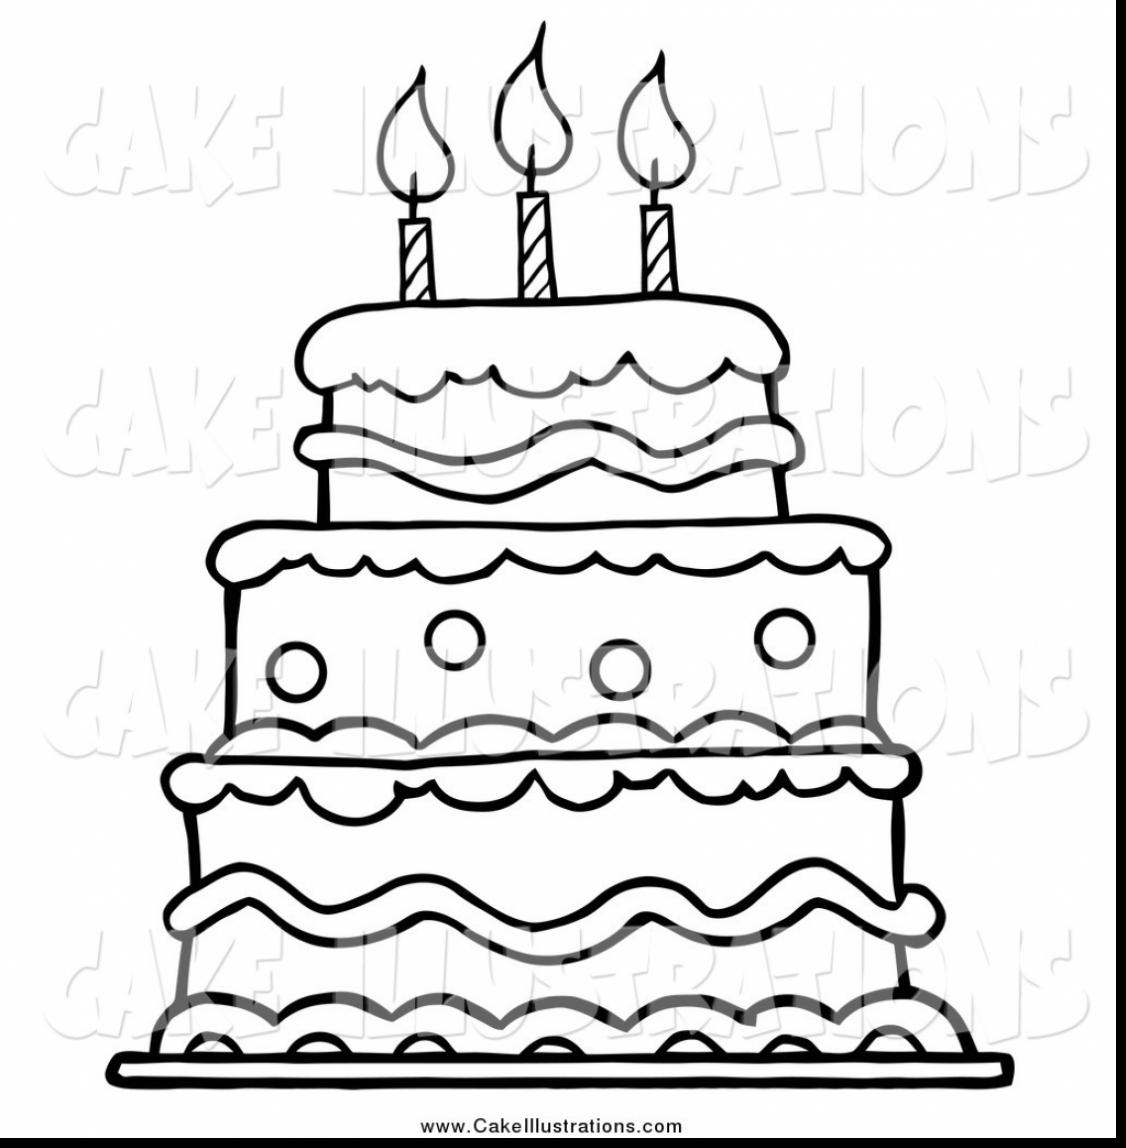 birthday cake coloring pages preschool ; remarkable-black-and-white-birthday-cake-clip-art-with-cake-coloring-pages-and-birthday-cake-coloring-pages-preschool